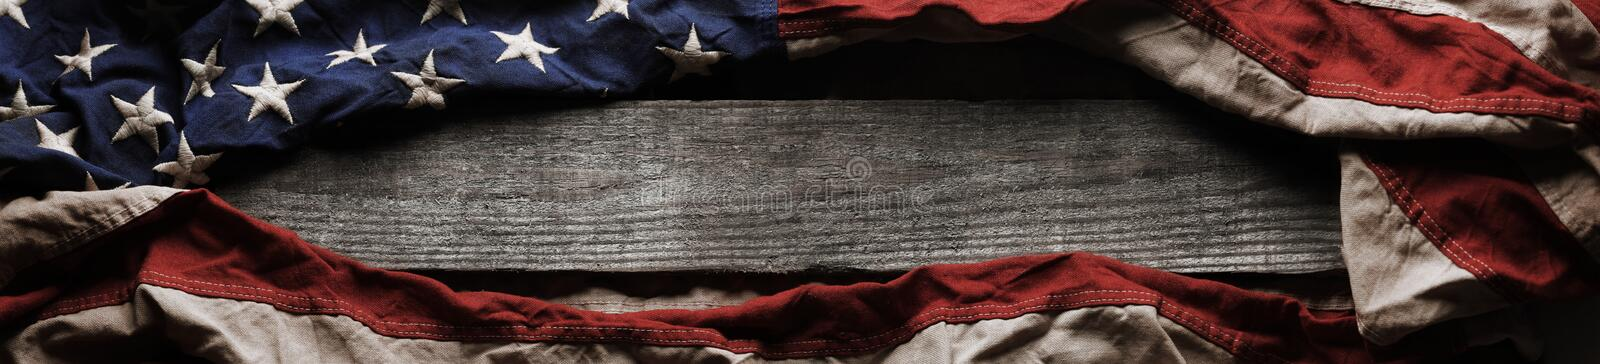 Old American flag background royalty free stock photography